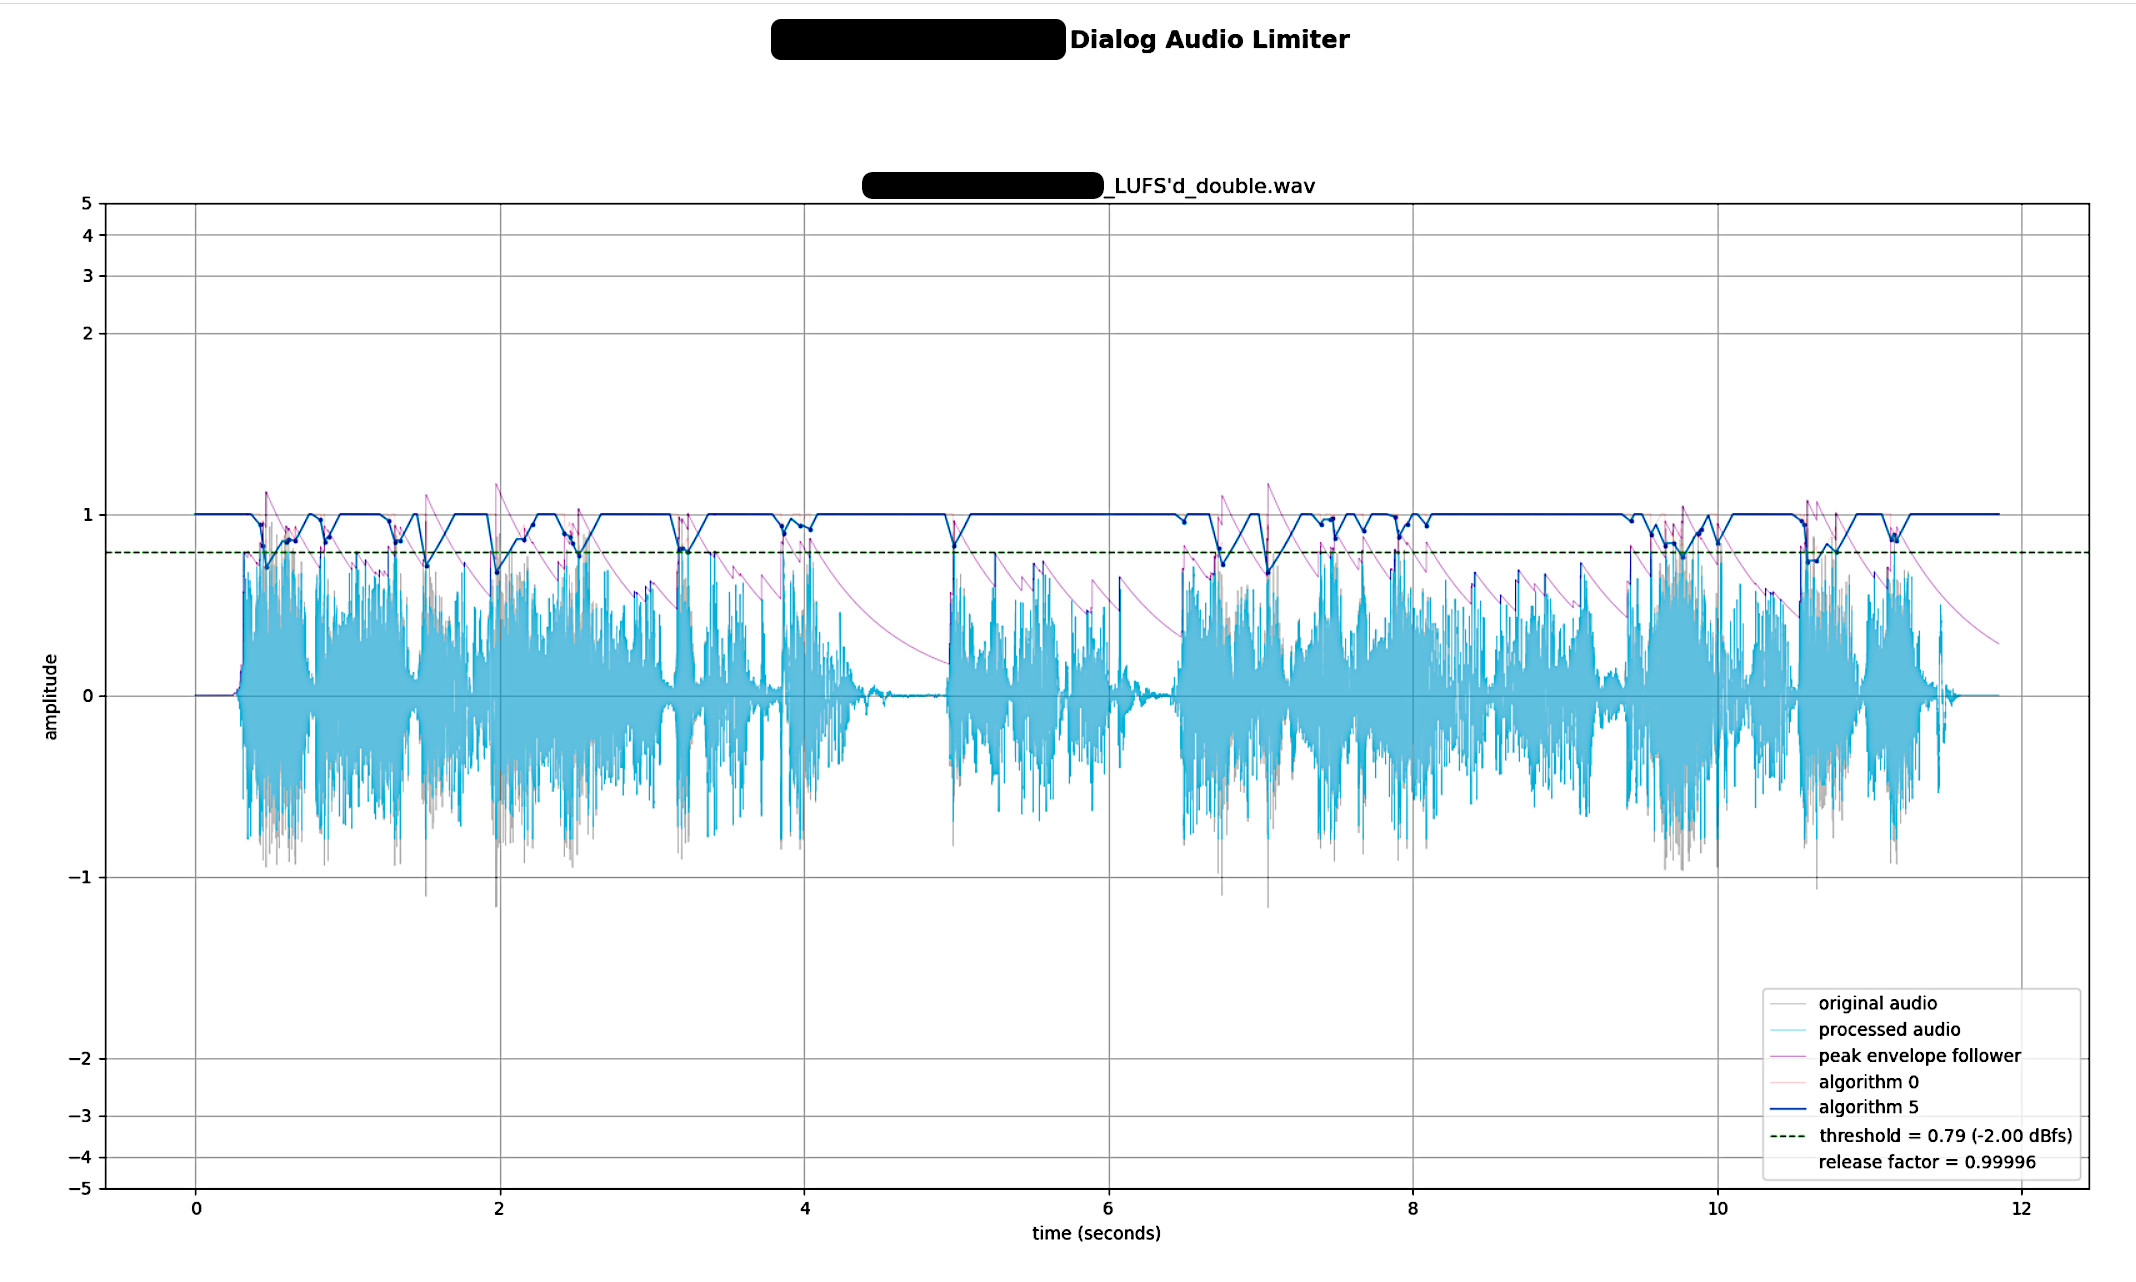 Image of audio DSP limiter affects on an audio waveform.